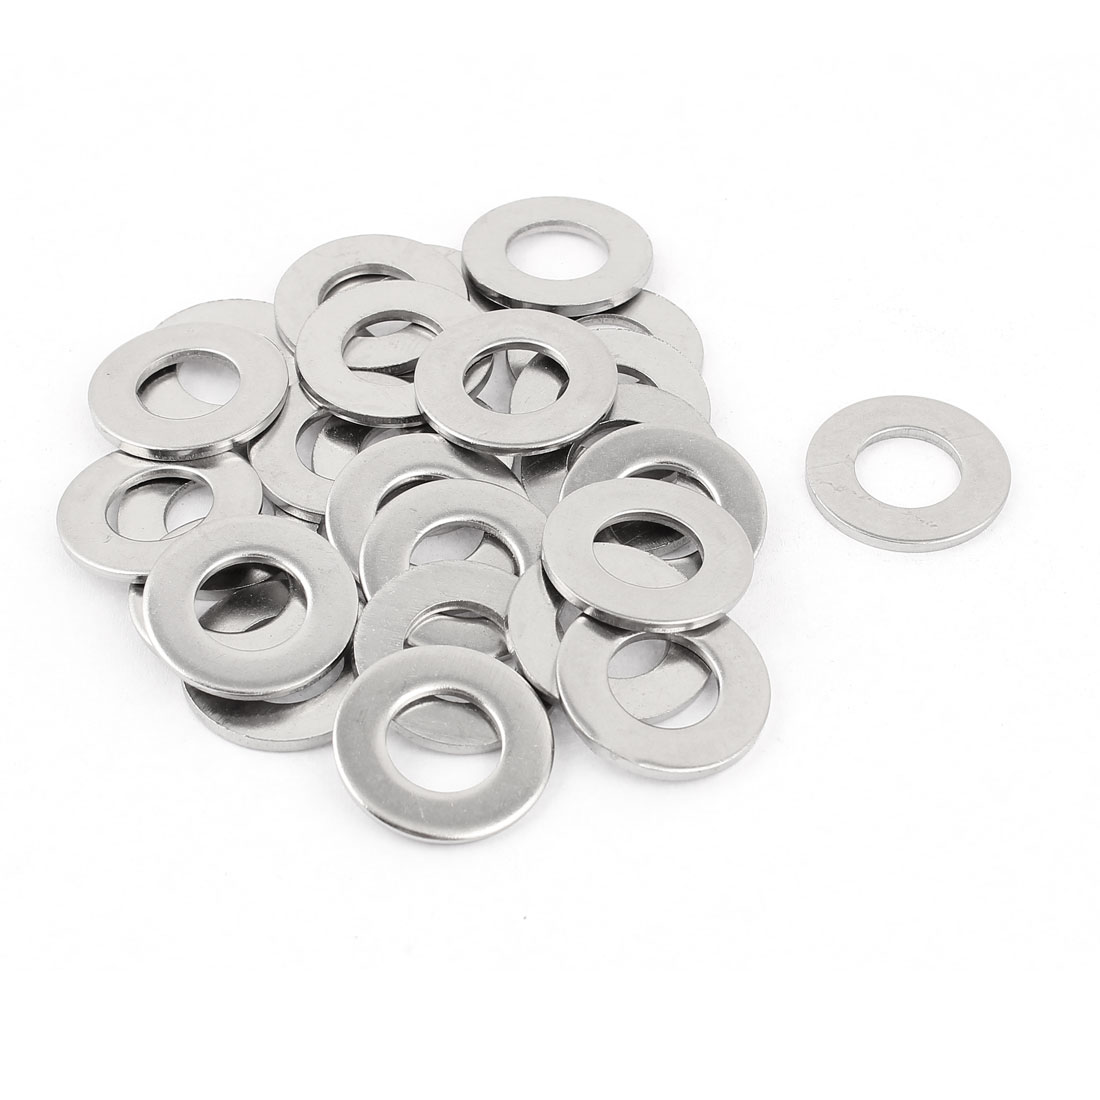 25Pcs M12 x 24mm x 2mm 304 Stainless Steel Flat Washer for Screw Bolt